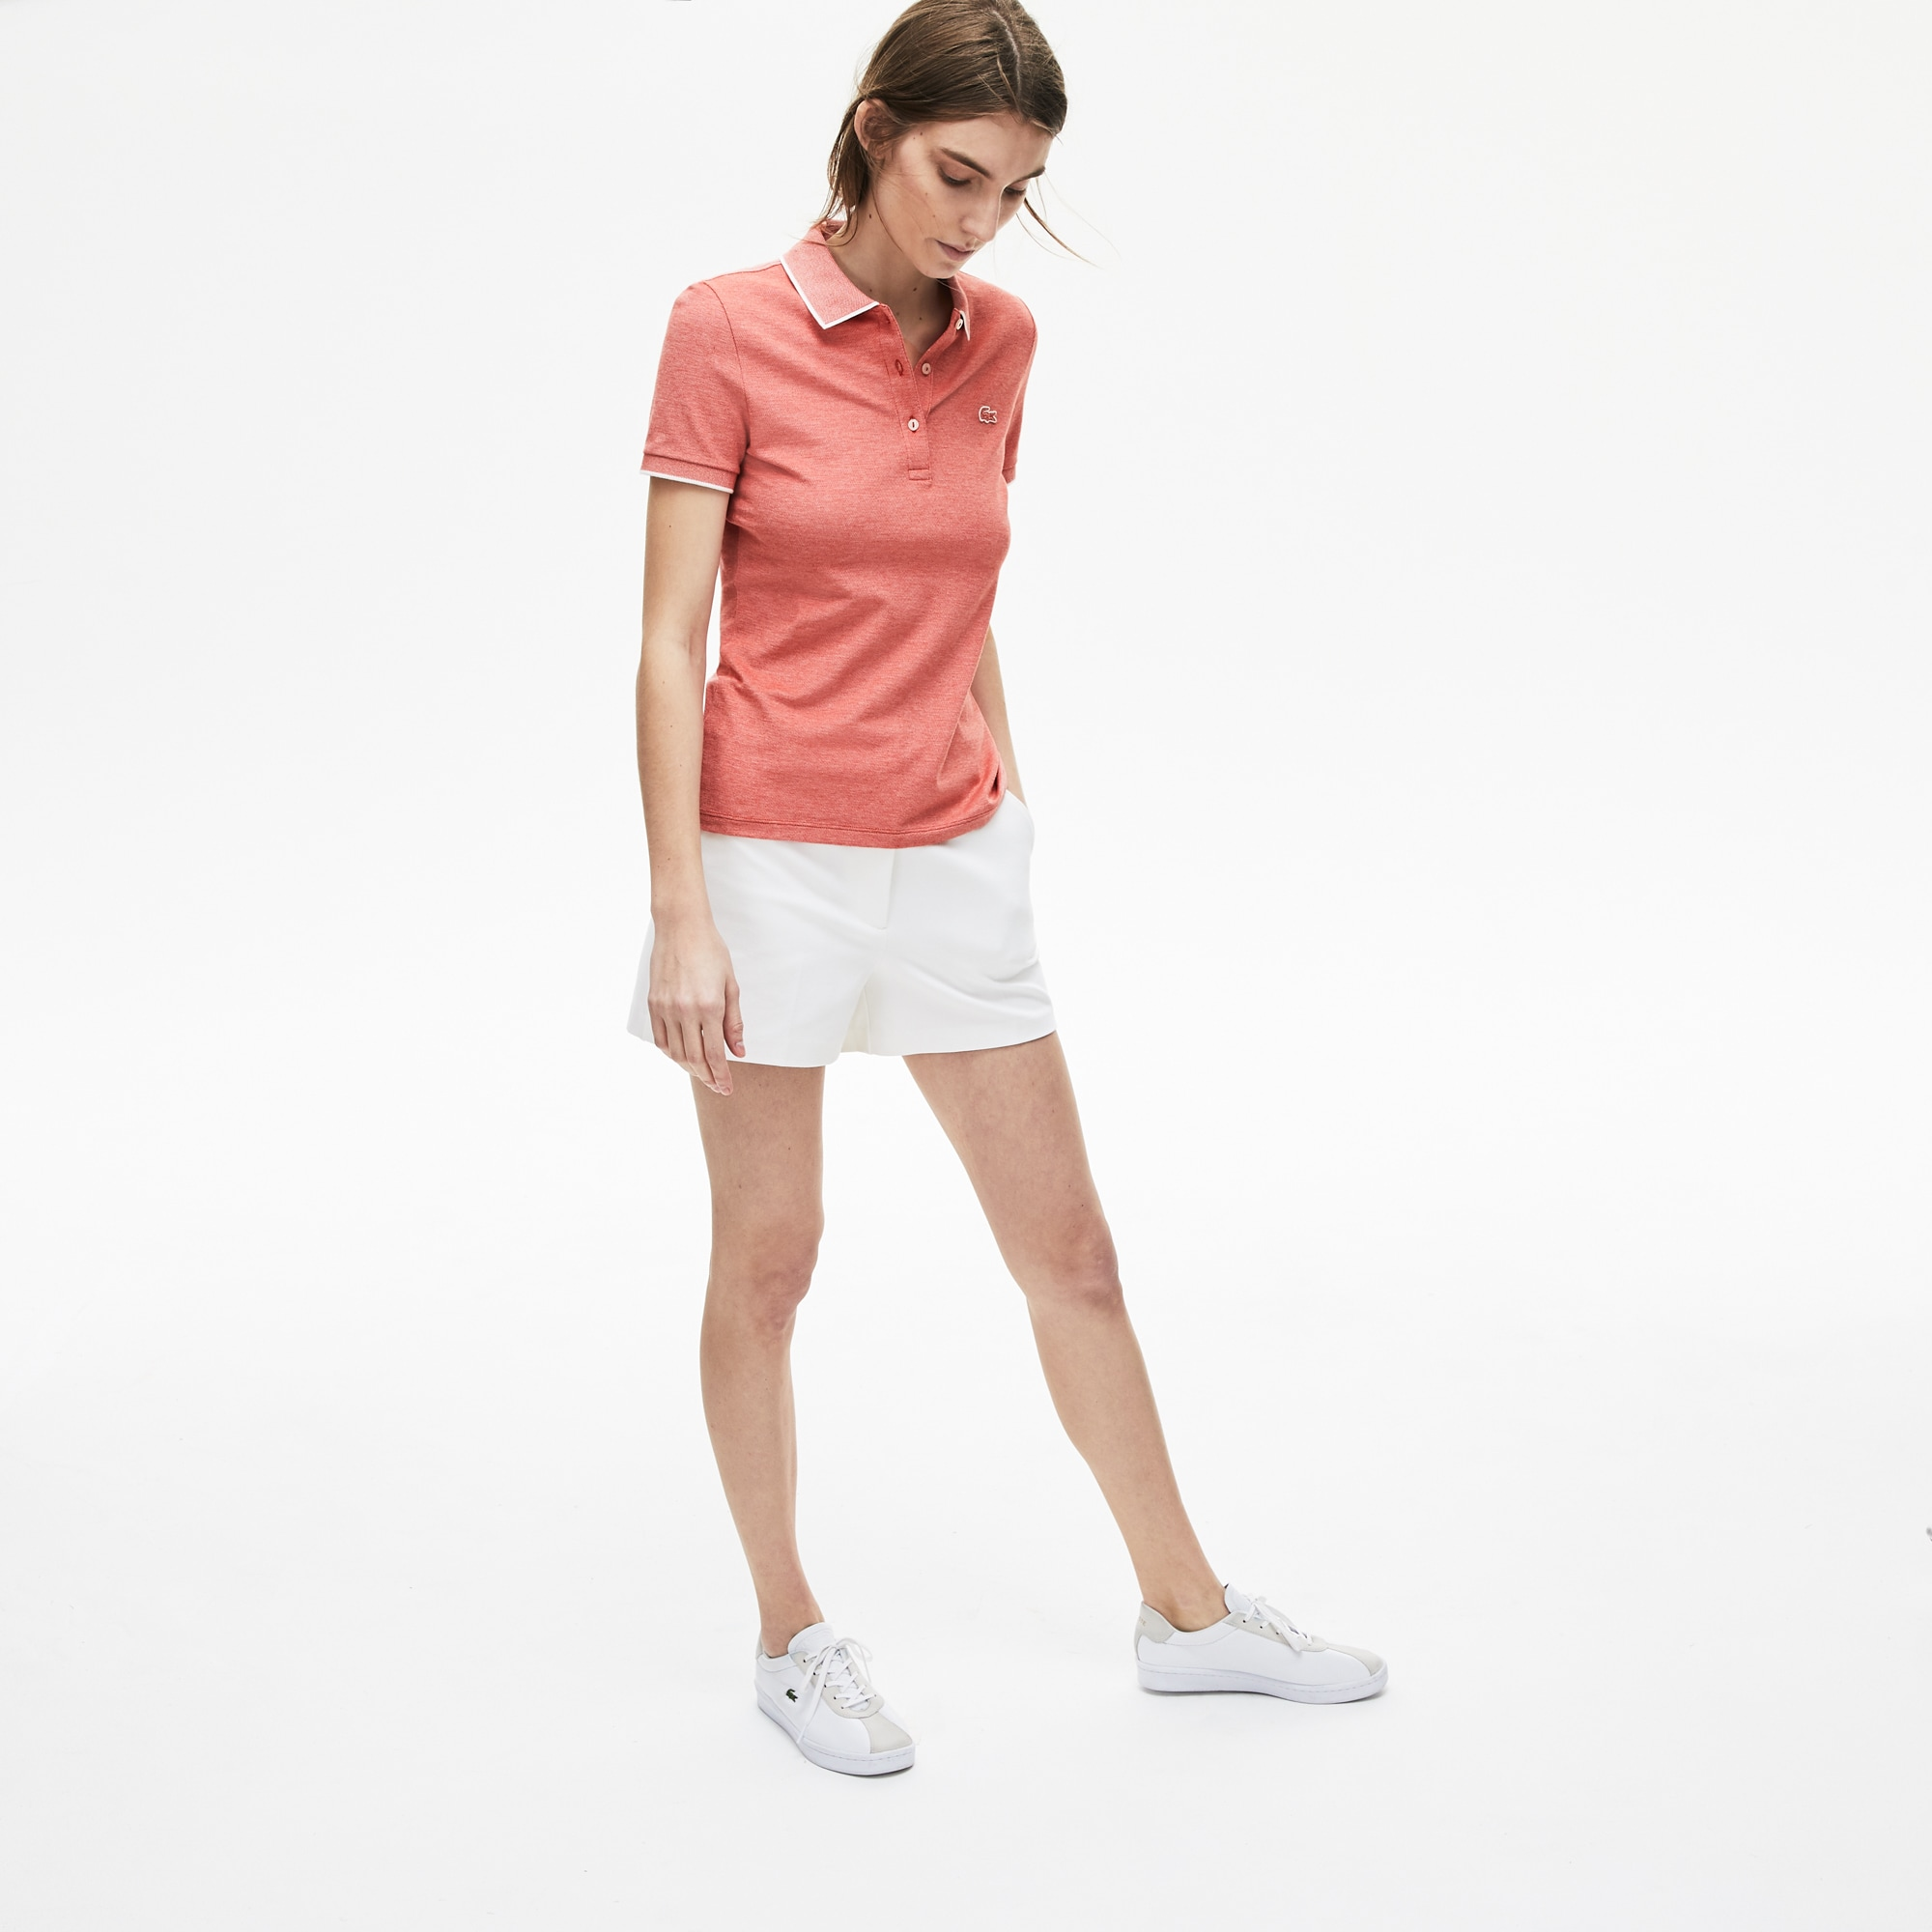 230a64055ad Women's Clothing on Sale | LACOSTE